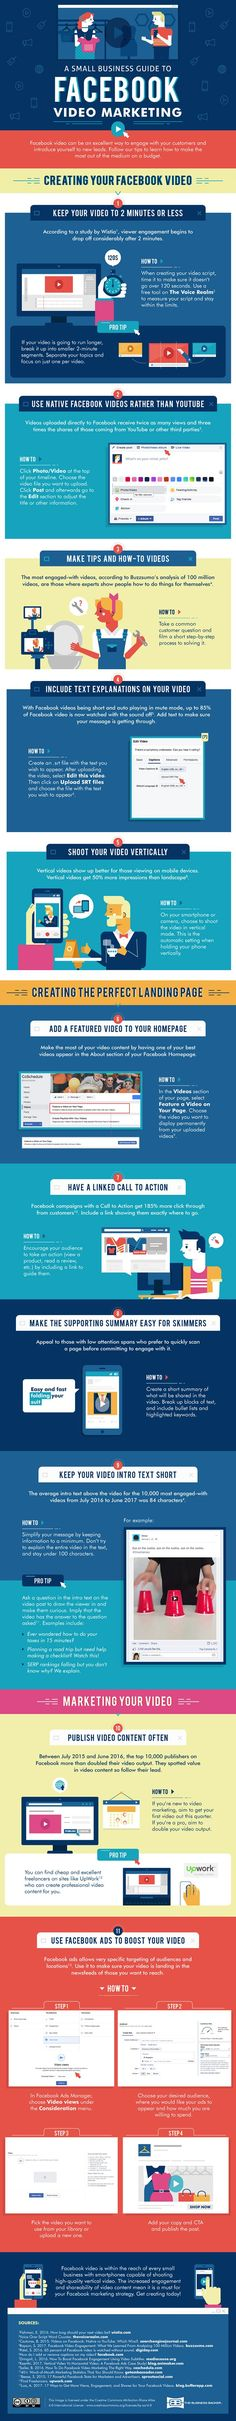 A Small Business Guide to Facebook Video Marketing [Infographic]